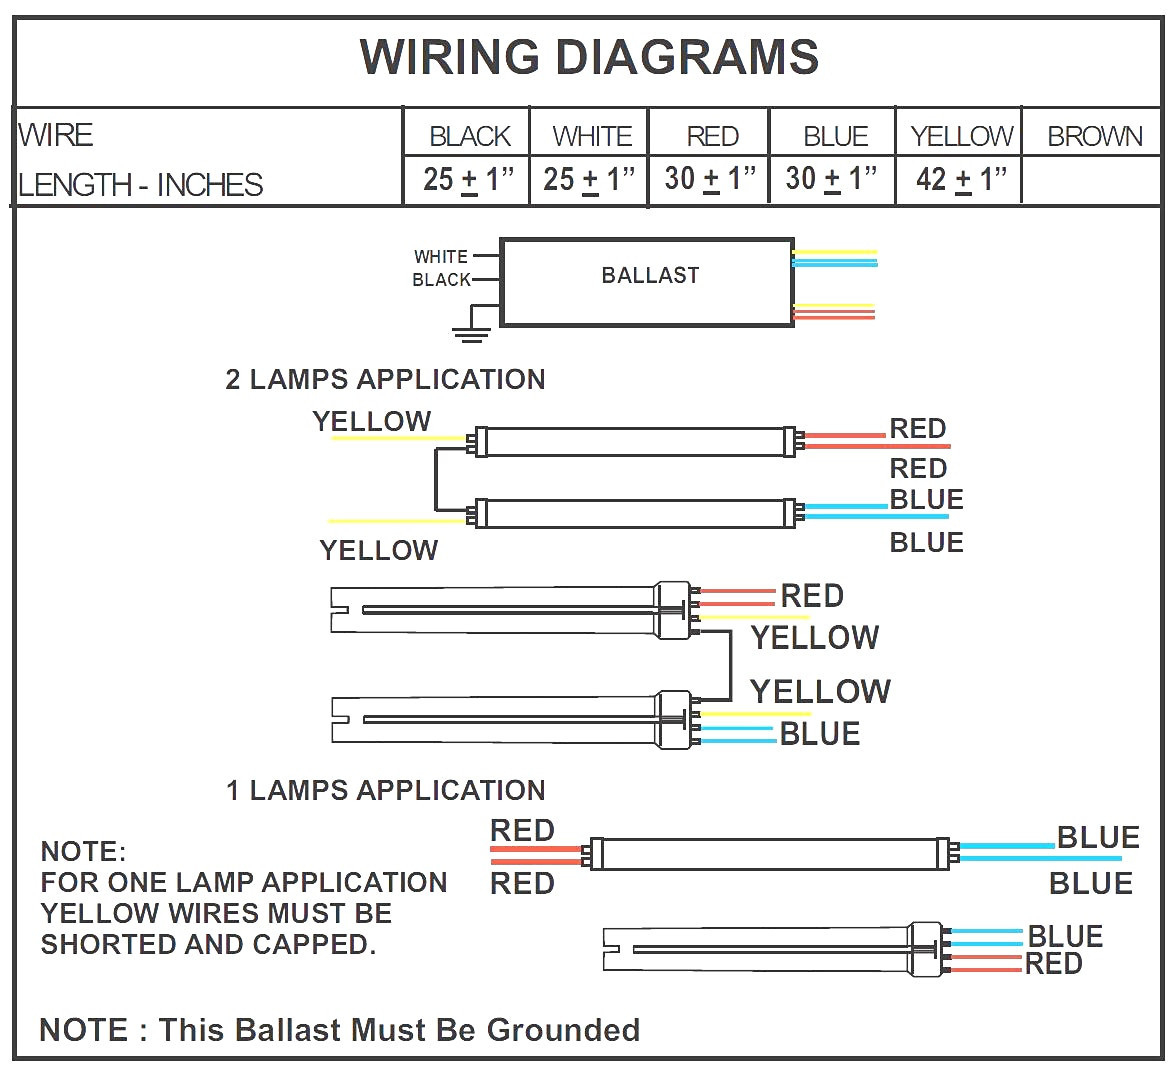 Wh2 120 C Wiring Diagram from wholefoodsonabudget.com